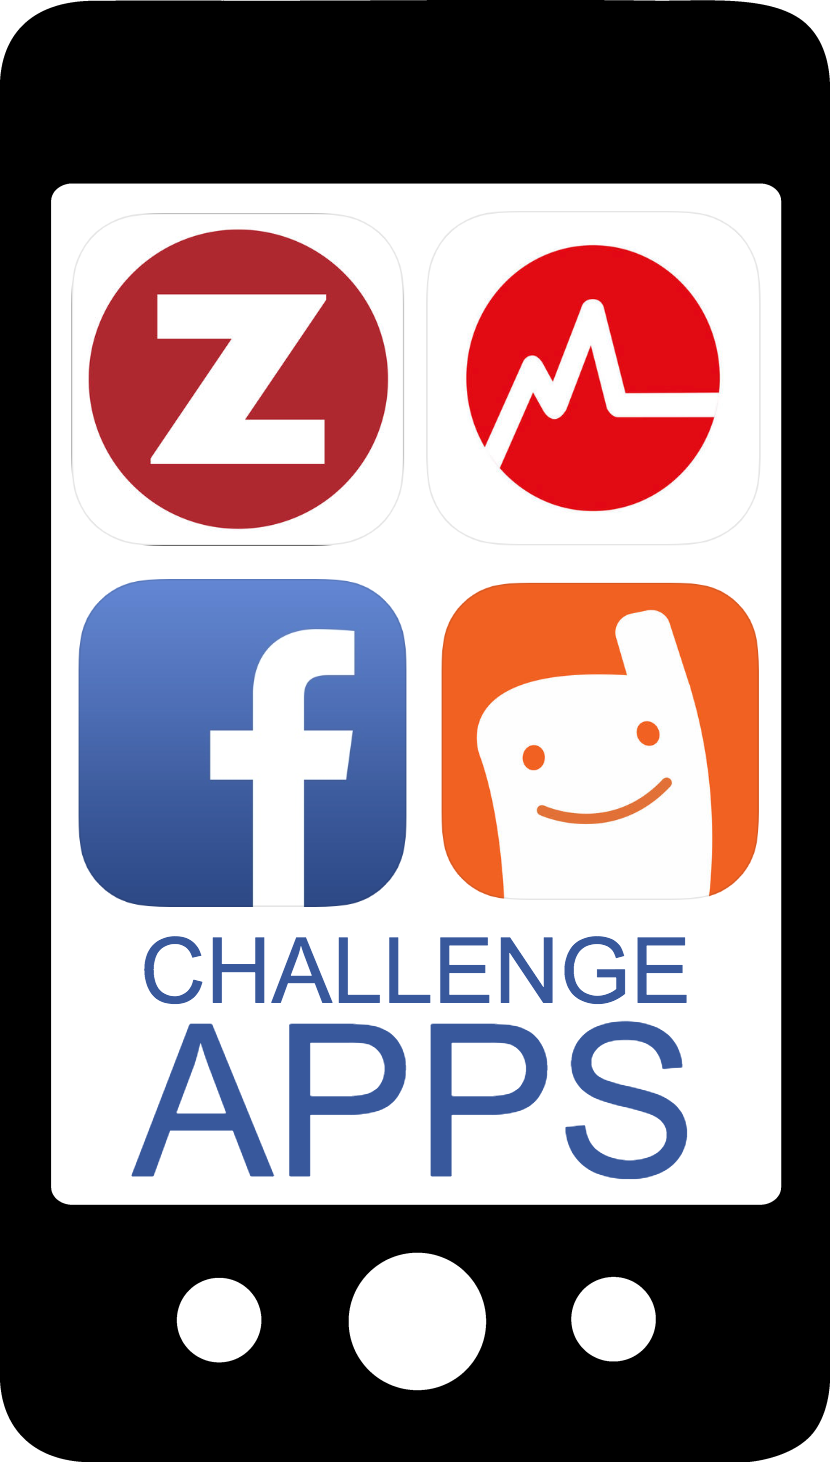 CHALLENGE APPS.png